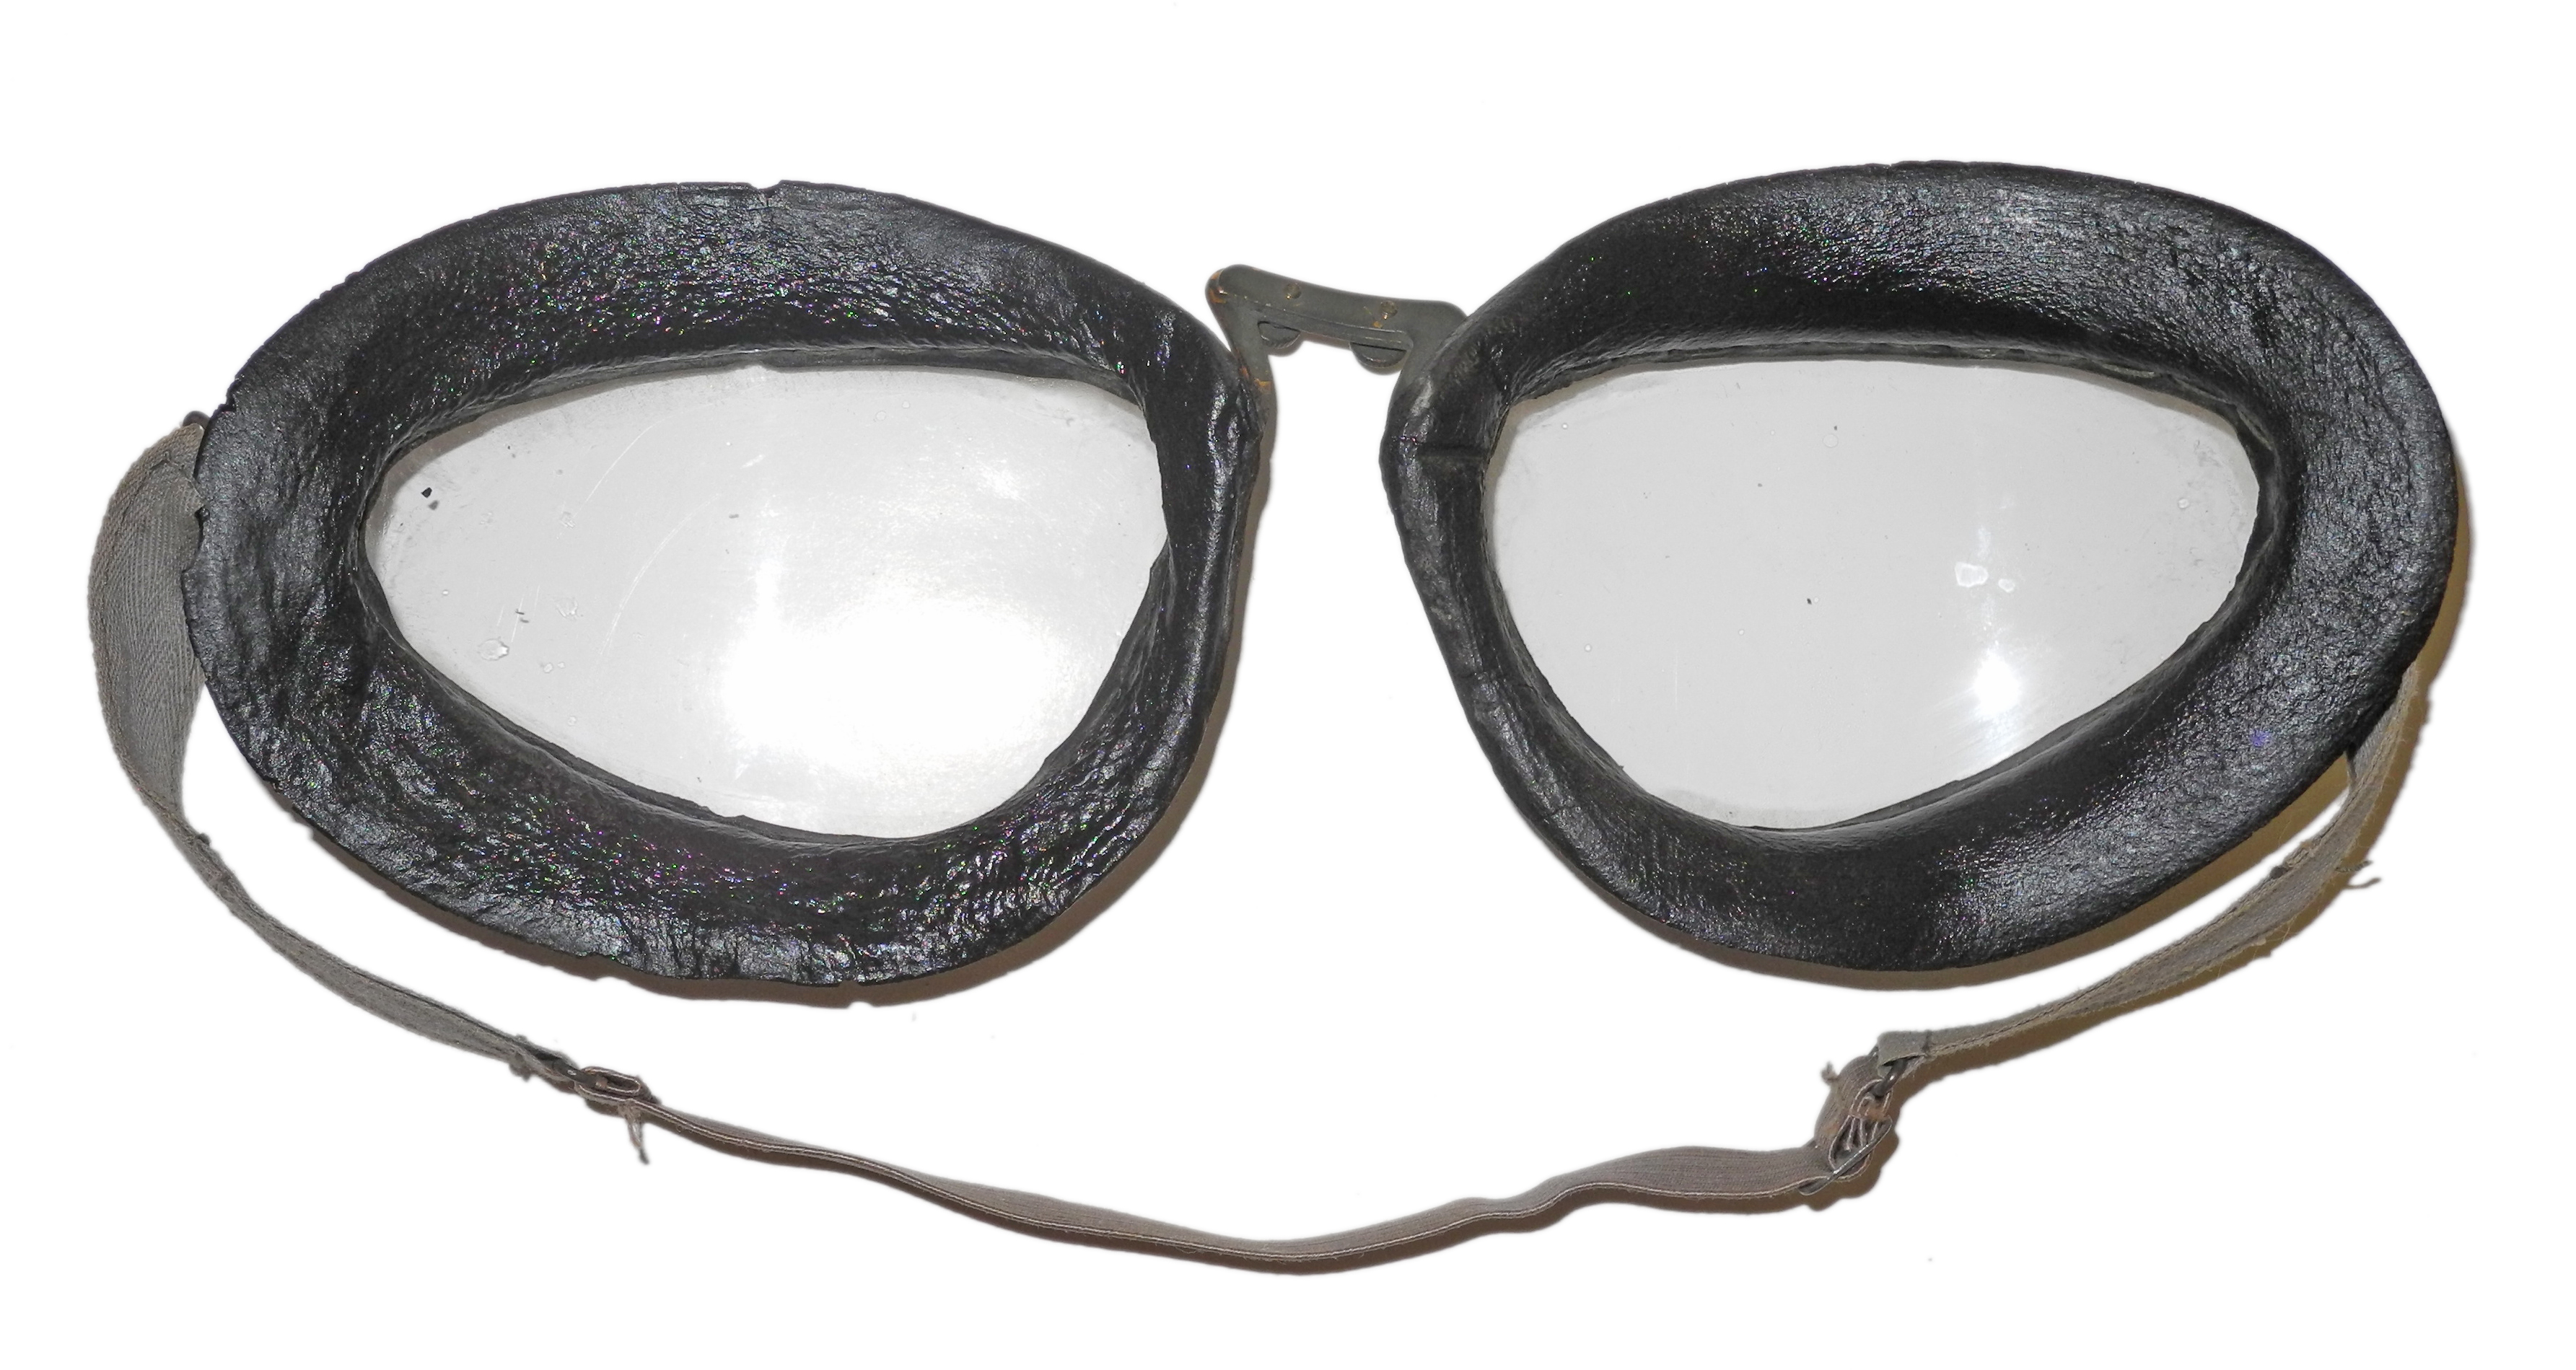 LW Model 306 goggles, field modified